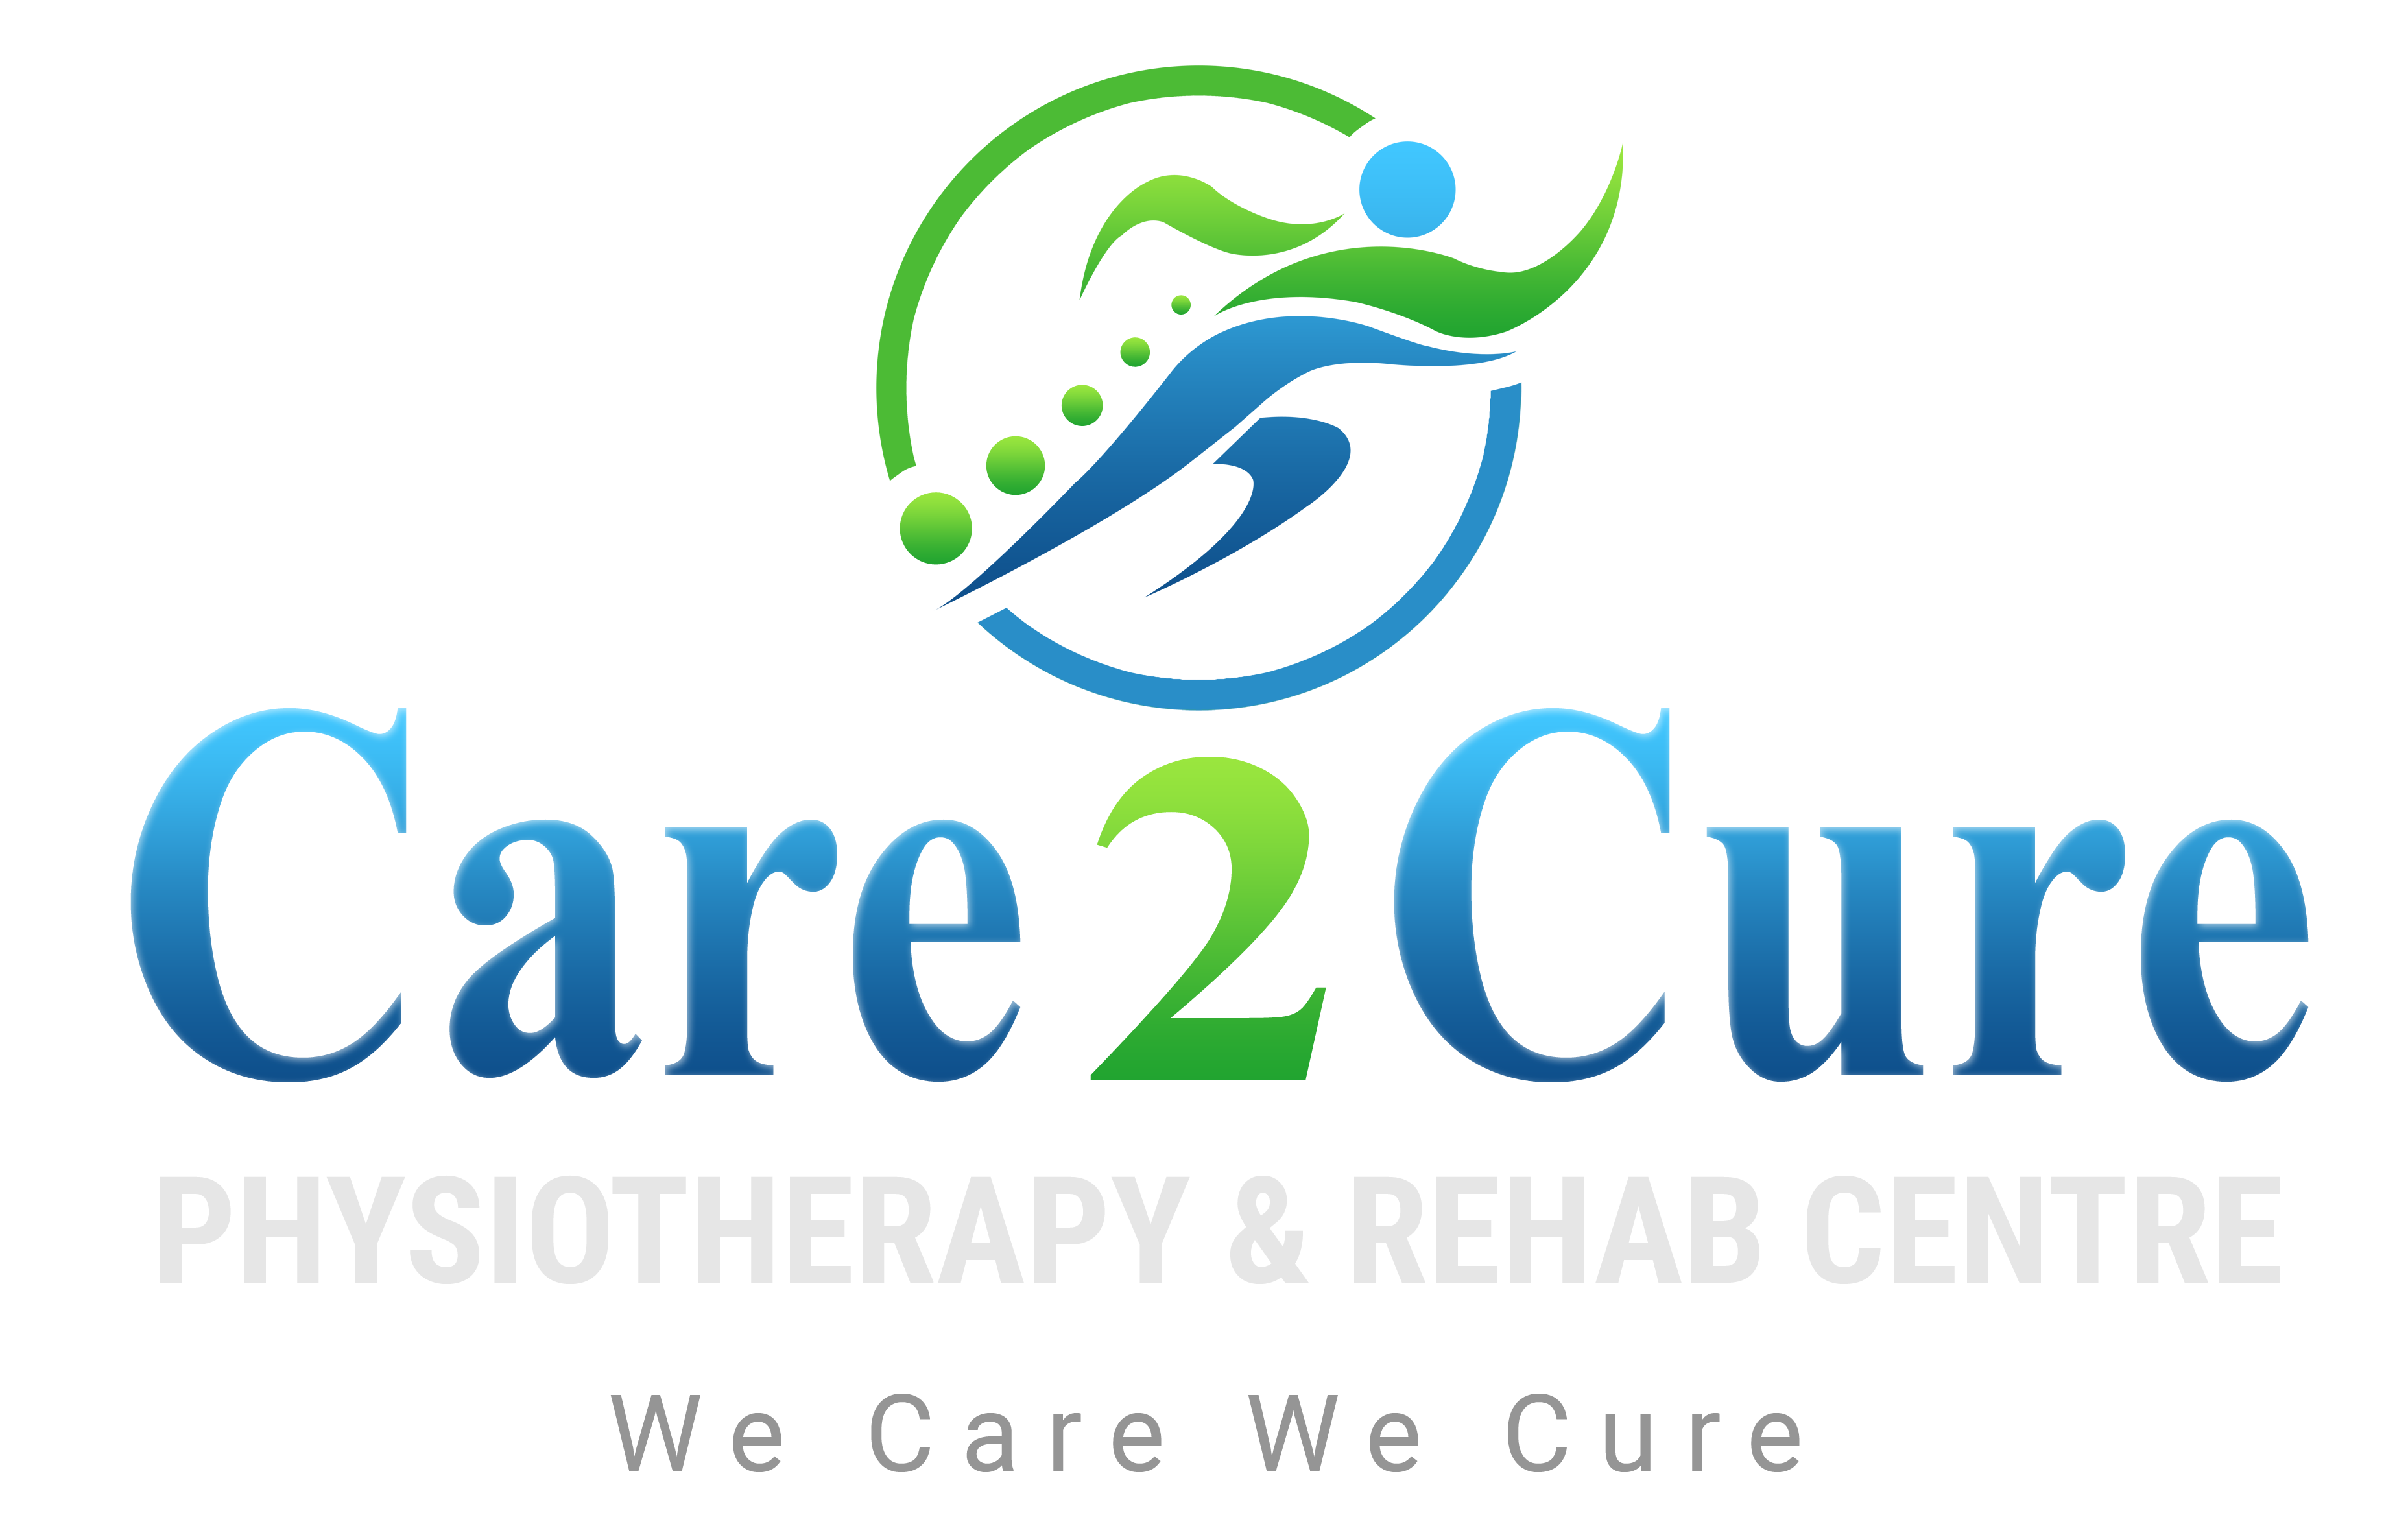 Wecare2cure